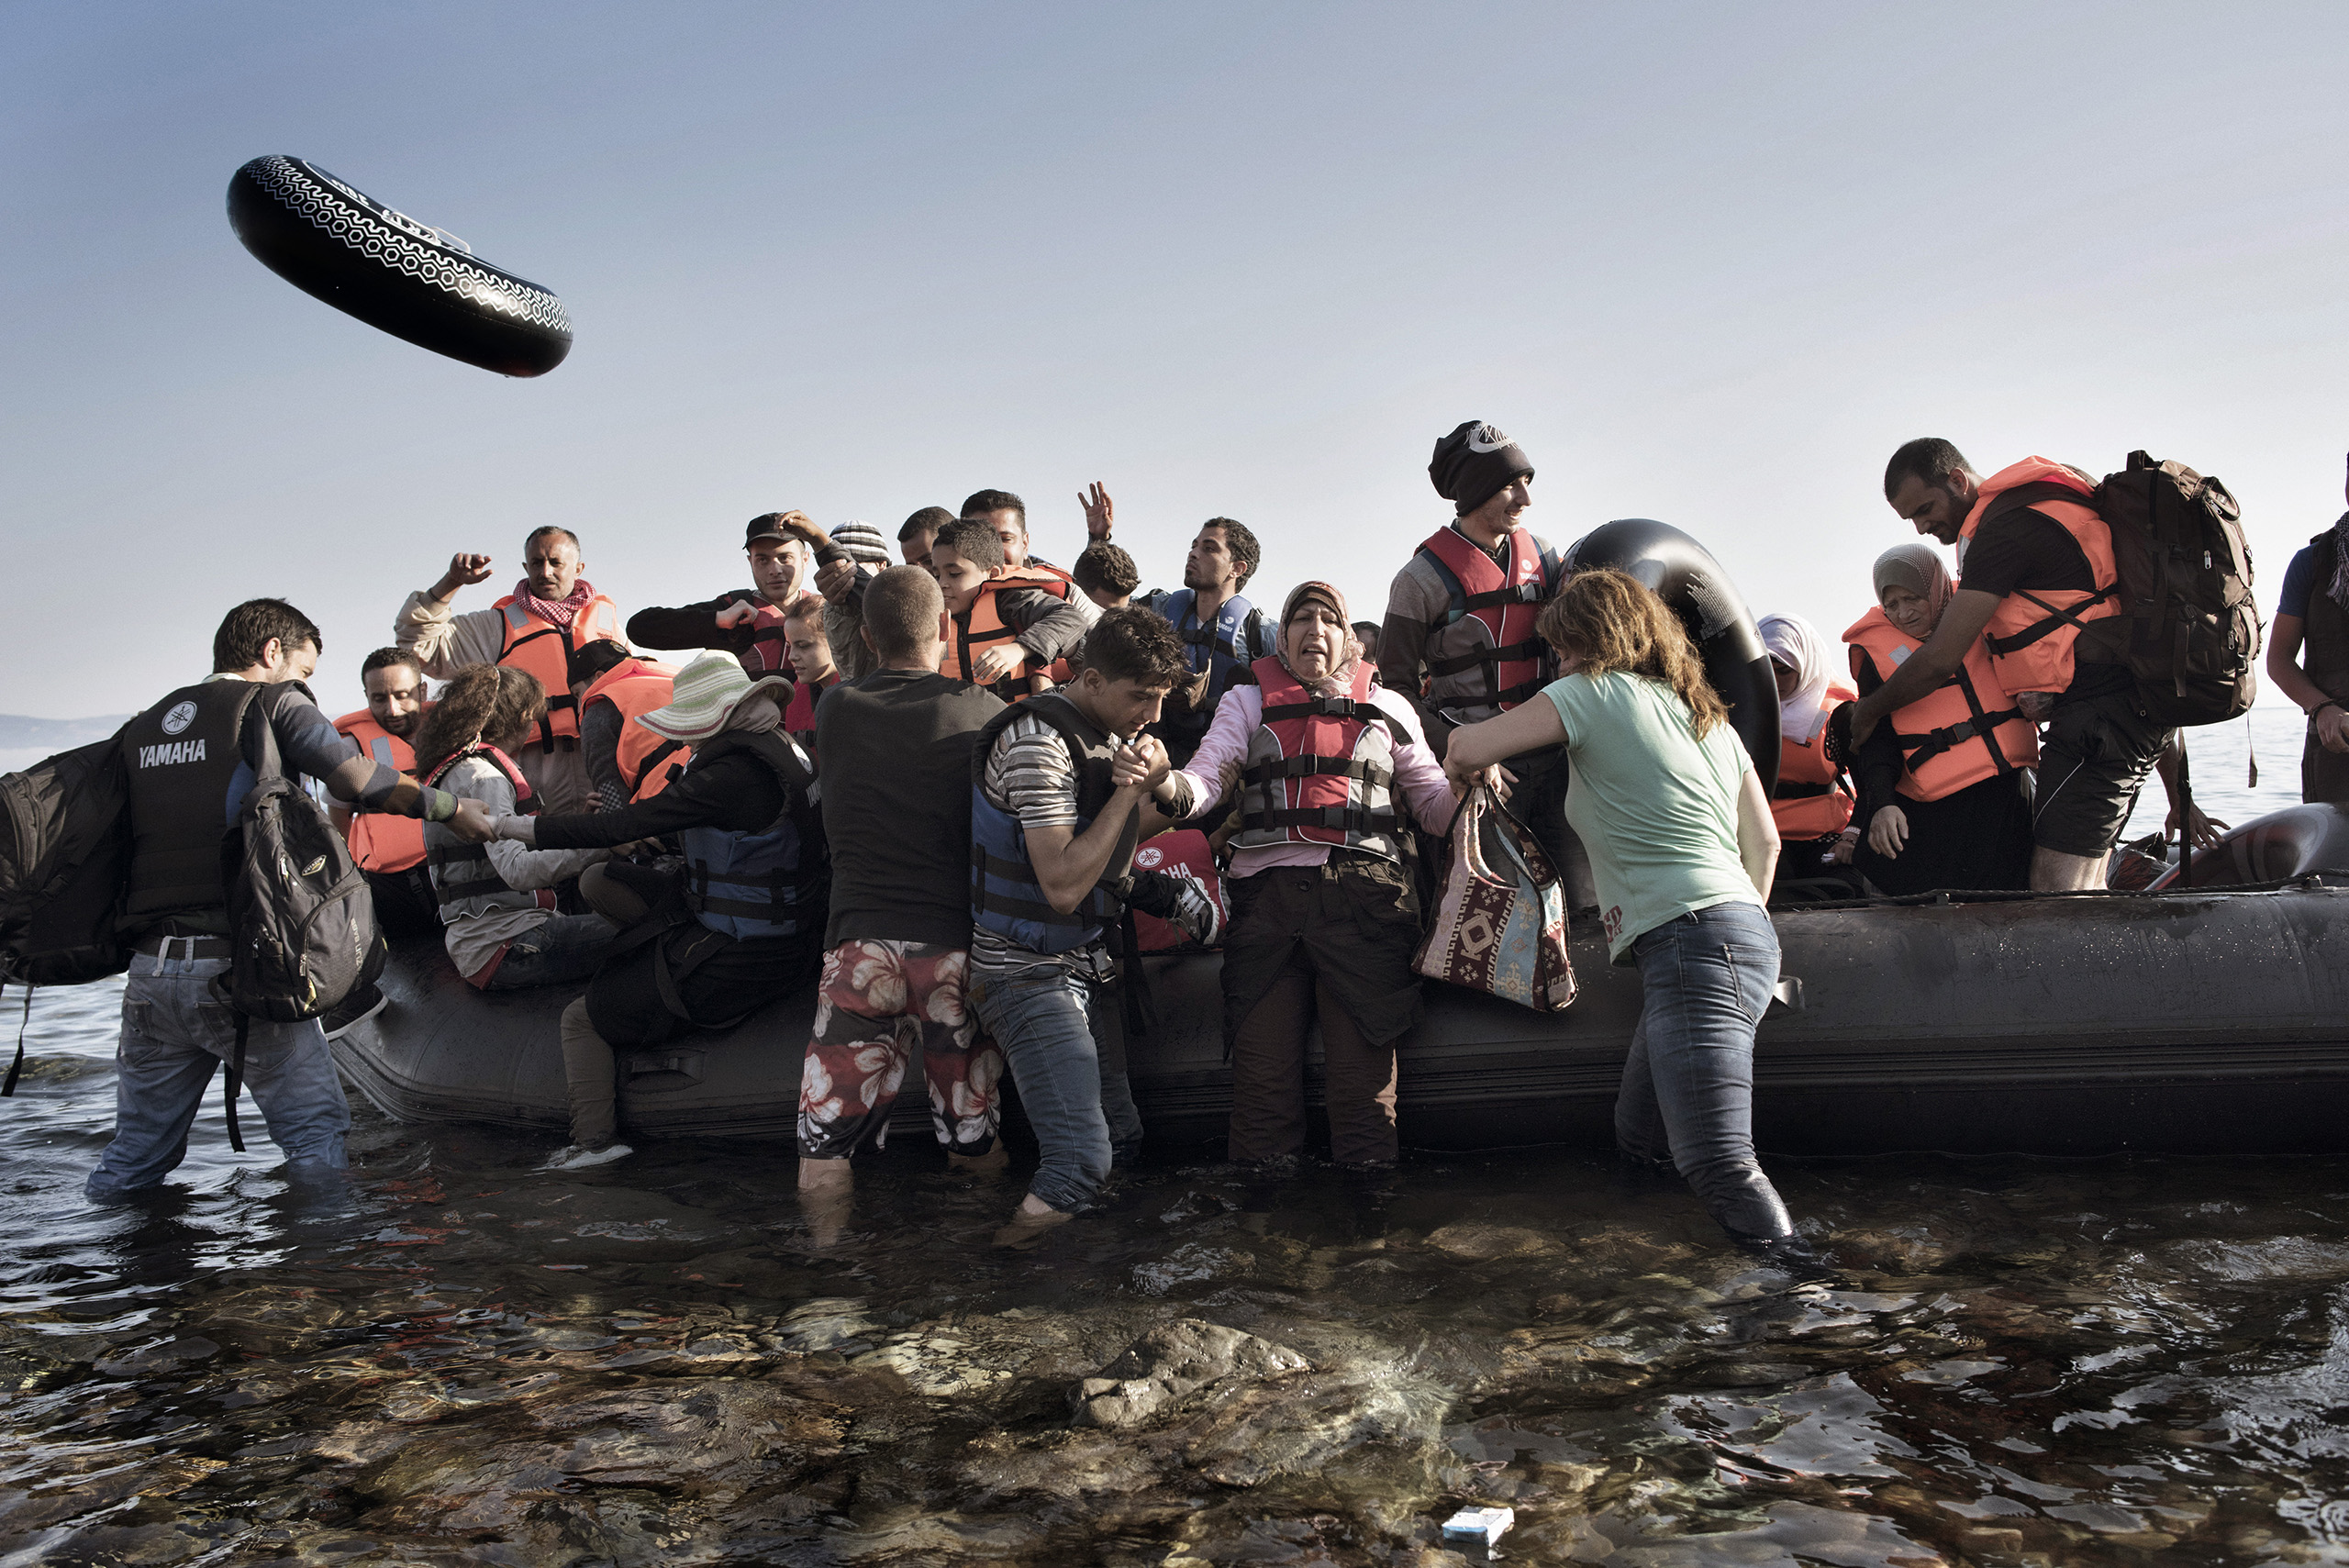 Volunteers rush to welcome a boat full of migrants as it arrives on the Greek island of Lesbos.